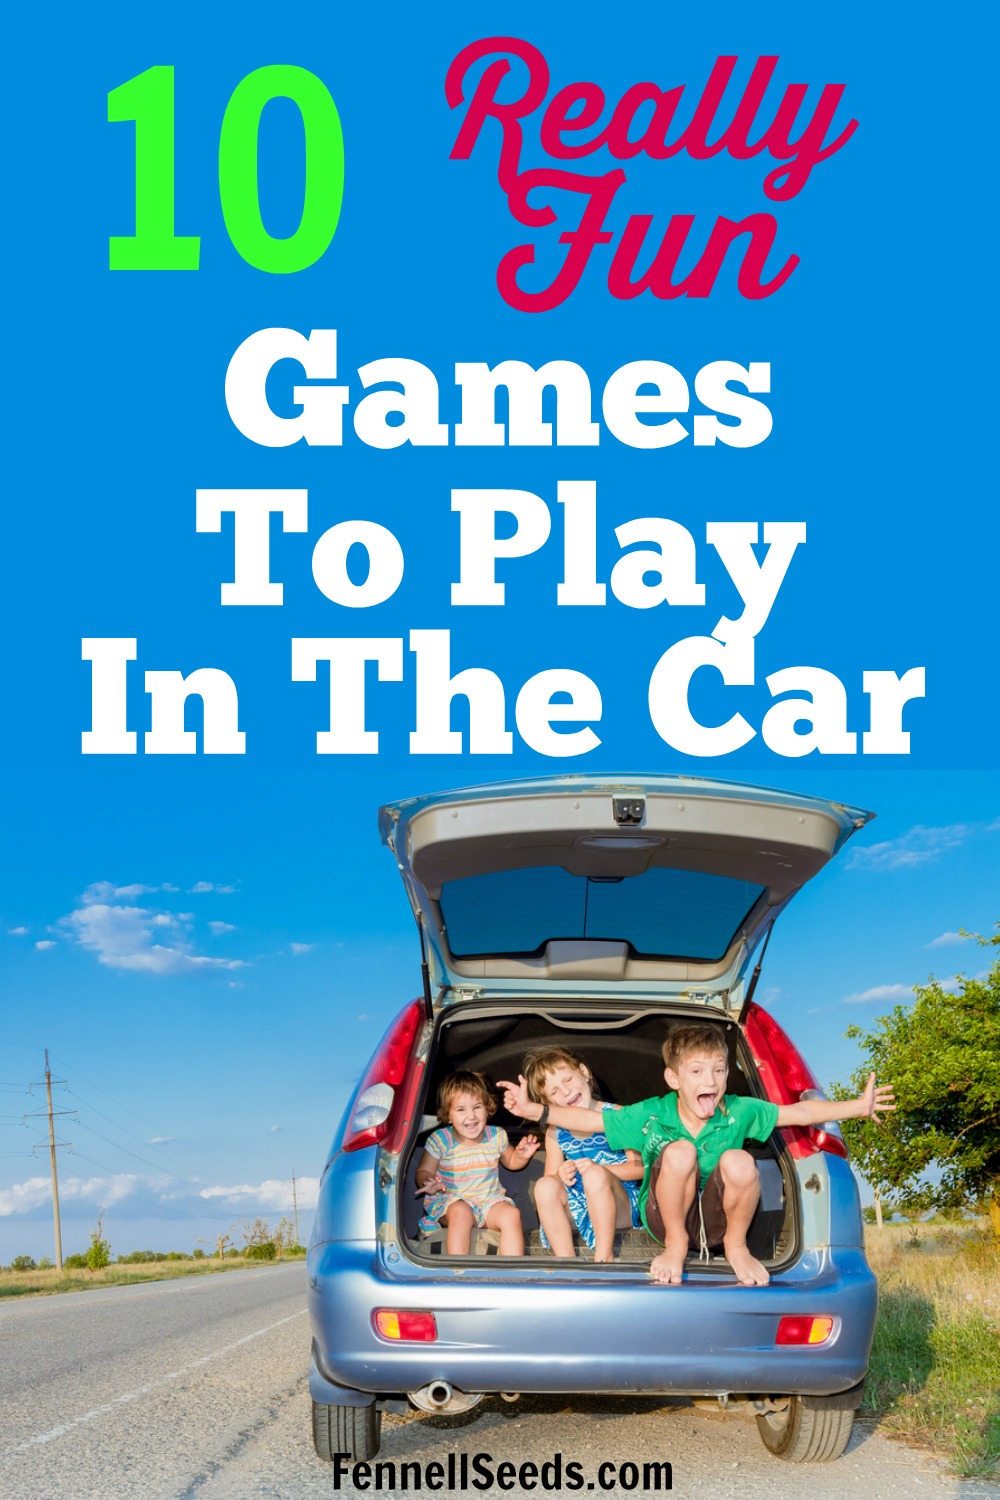 Games to play in the car, car games for kids, travel games for kids, road trip games for kids, fun games to play in the car